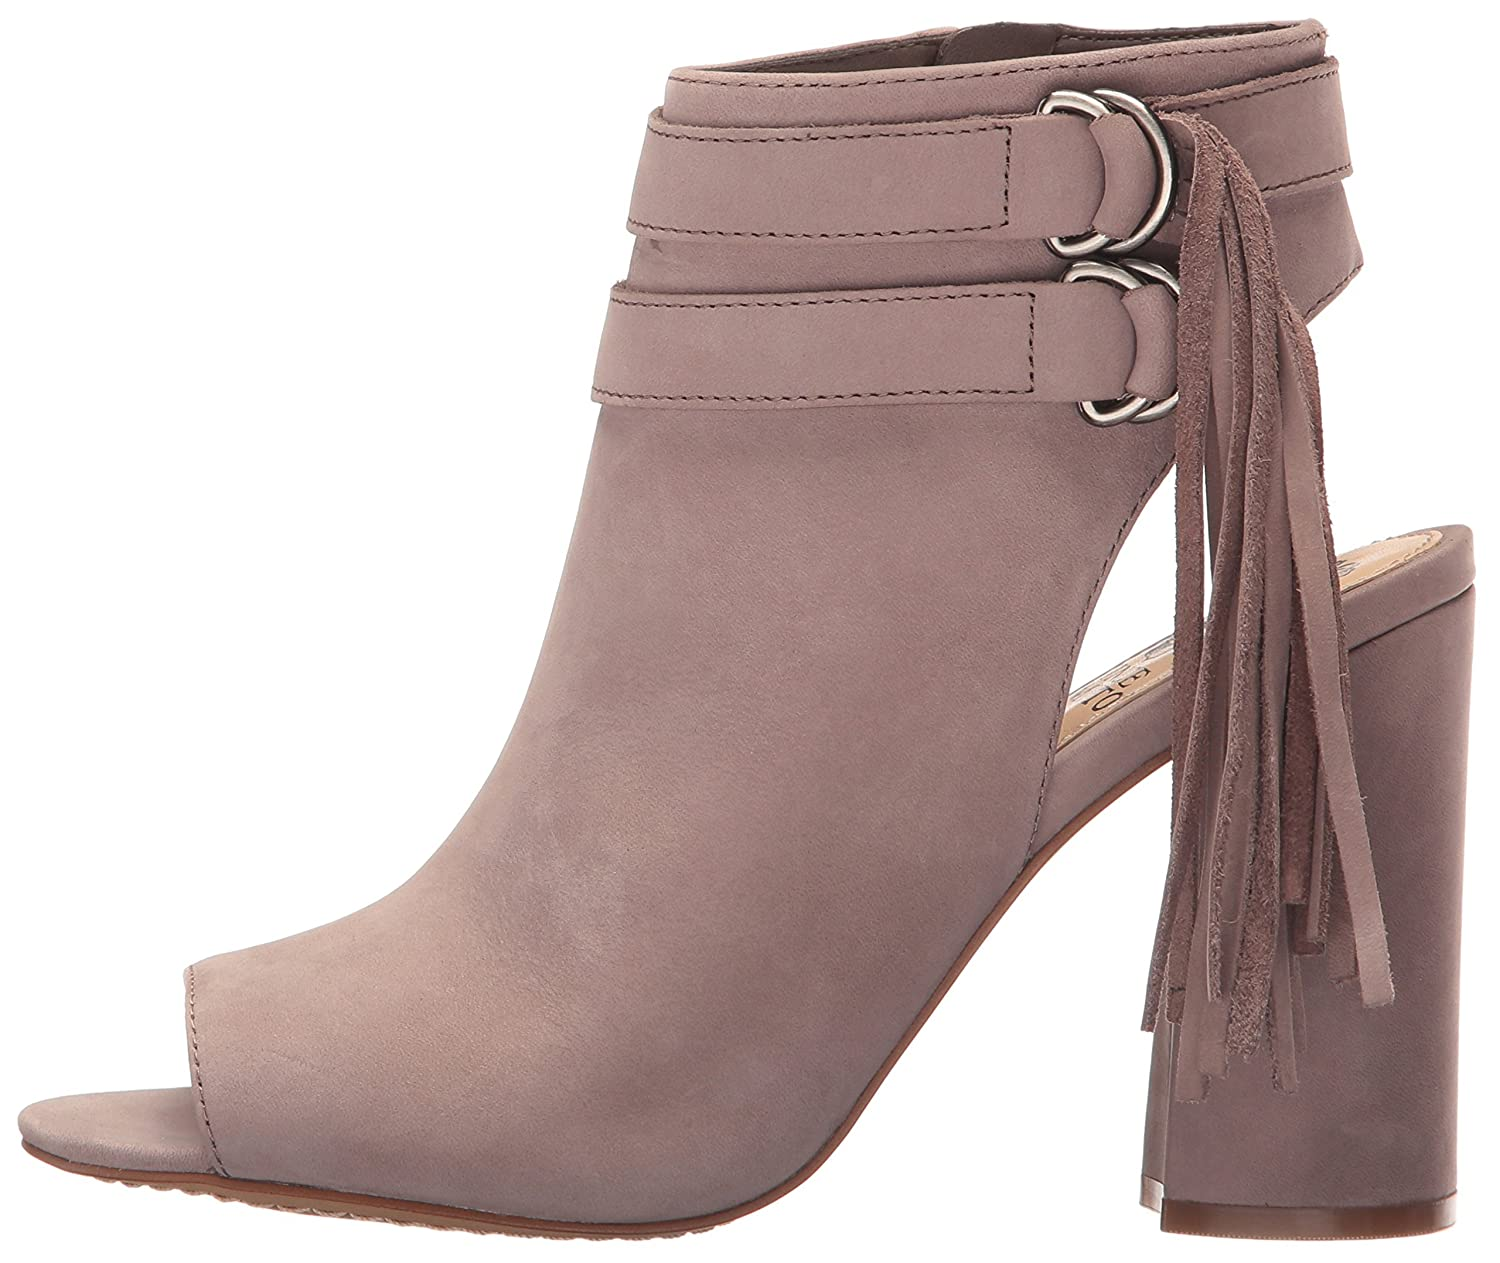 Vince Camuto Women's Catinca Ankle Boot B072LV1PF7 8 B(M) US|Mesa Taupe